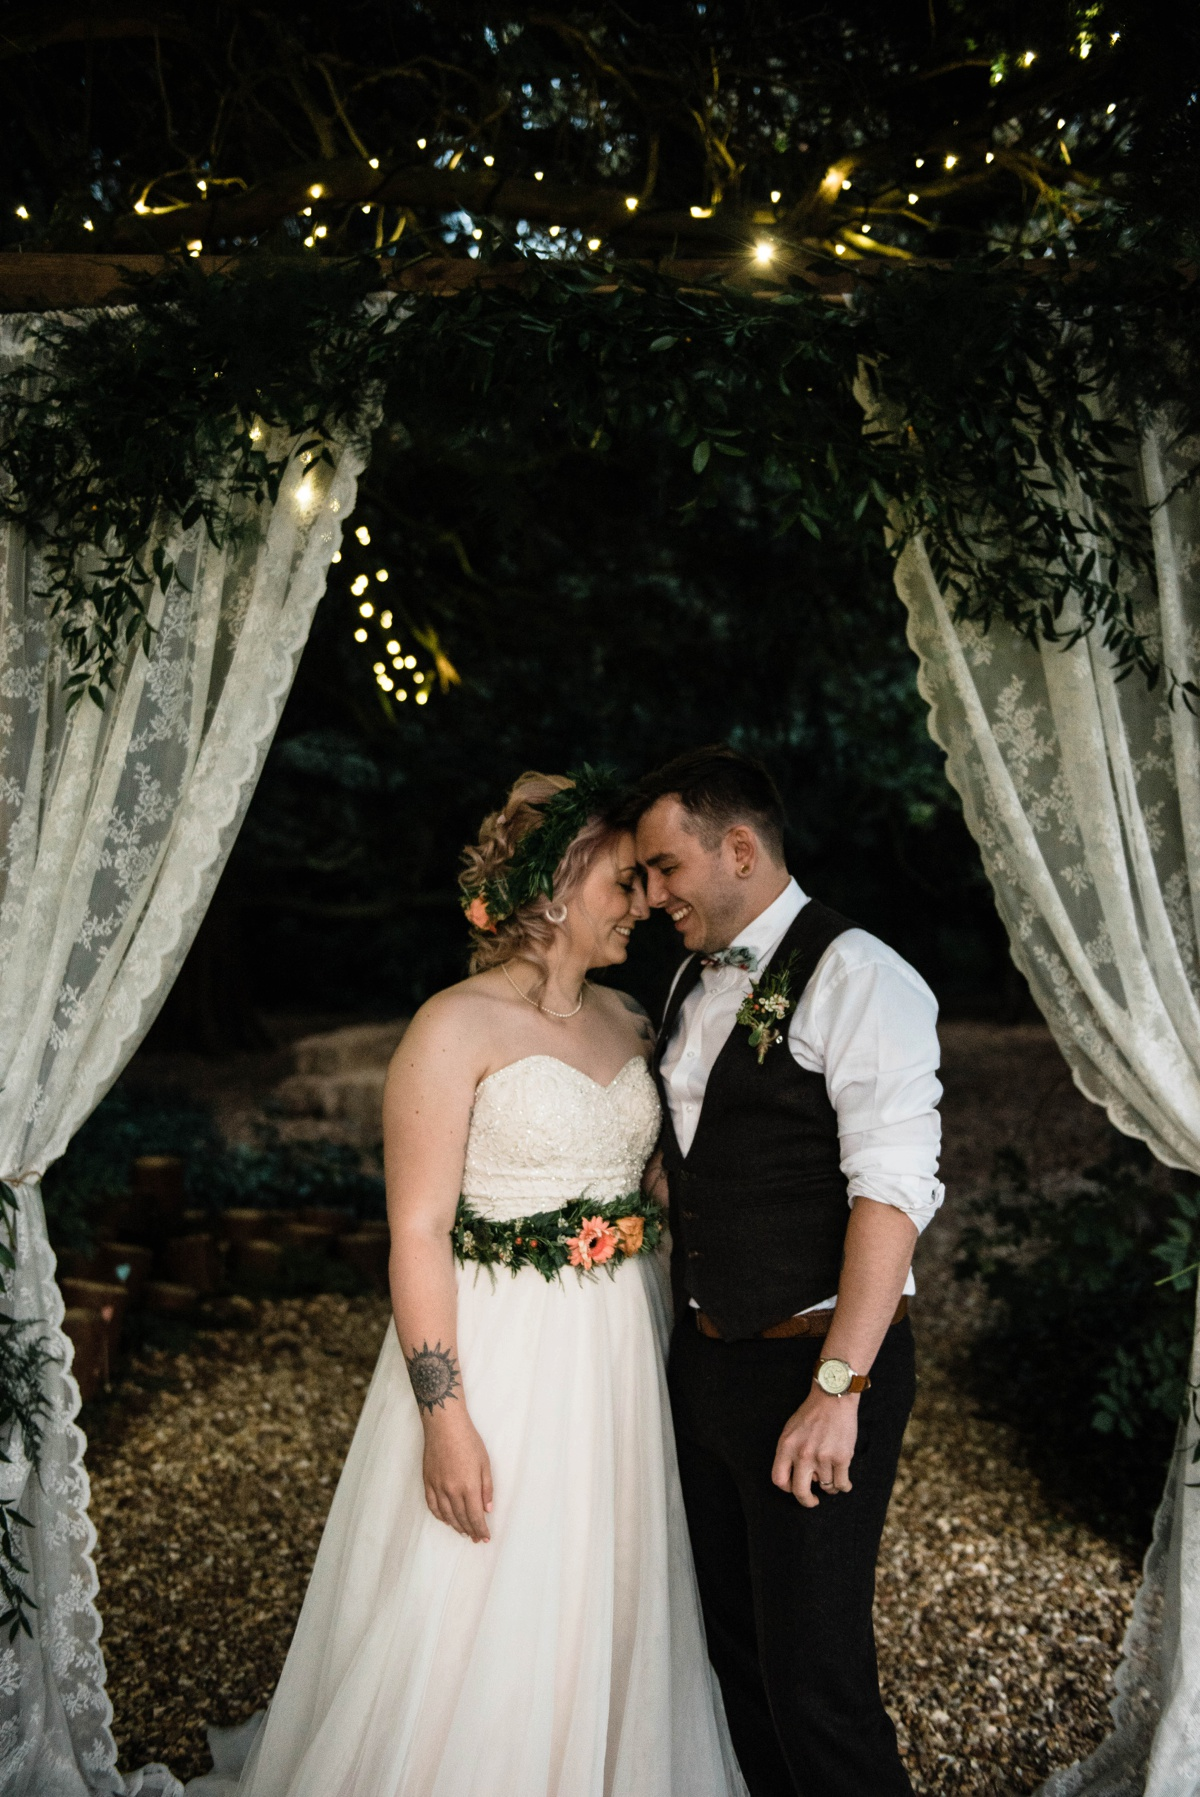 This couple wanted an outdoor rustic botanical wedding but due to the weather they had to bring everything indoors